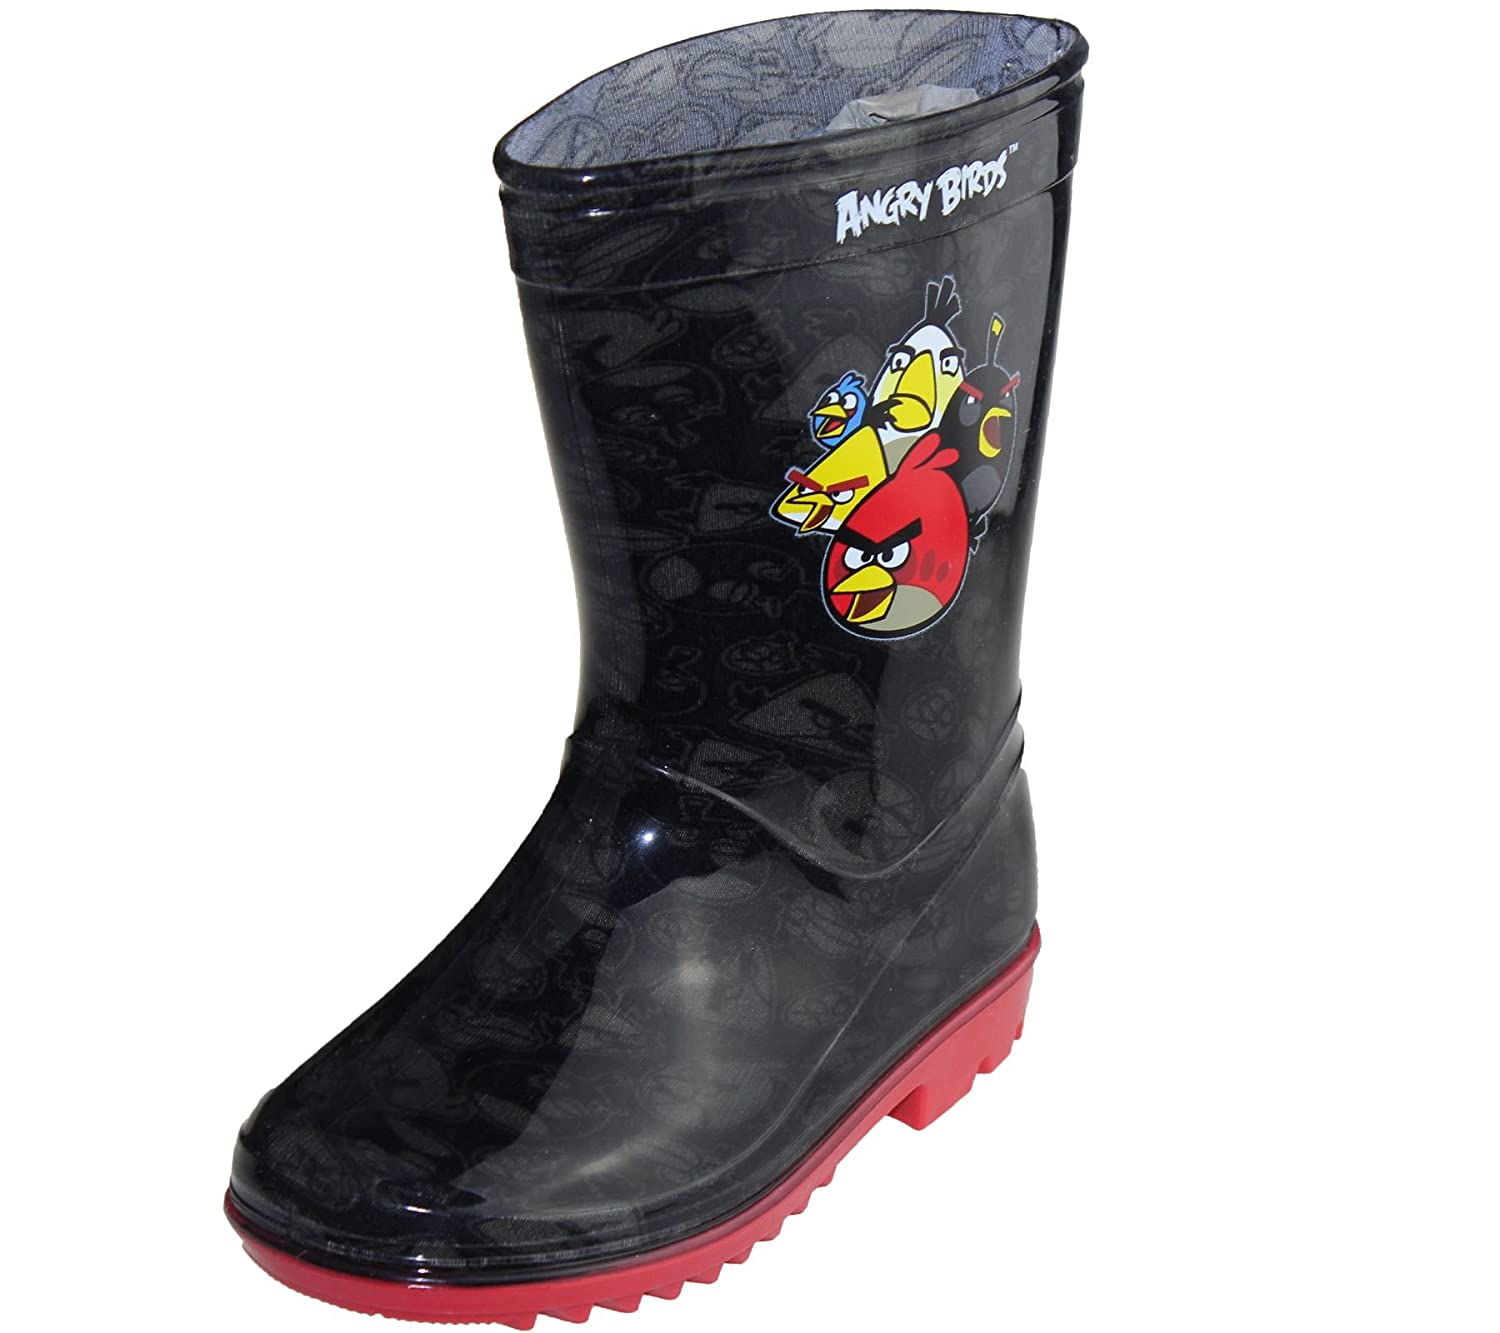 Boys Wellington Girls Wellies Kids Unisex Rain Winter Snow Rubber Boots:  Amazon.co.uk: Shoes & Bags